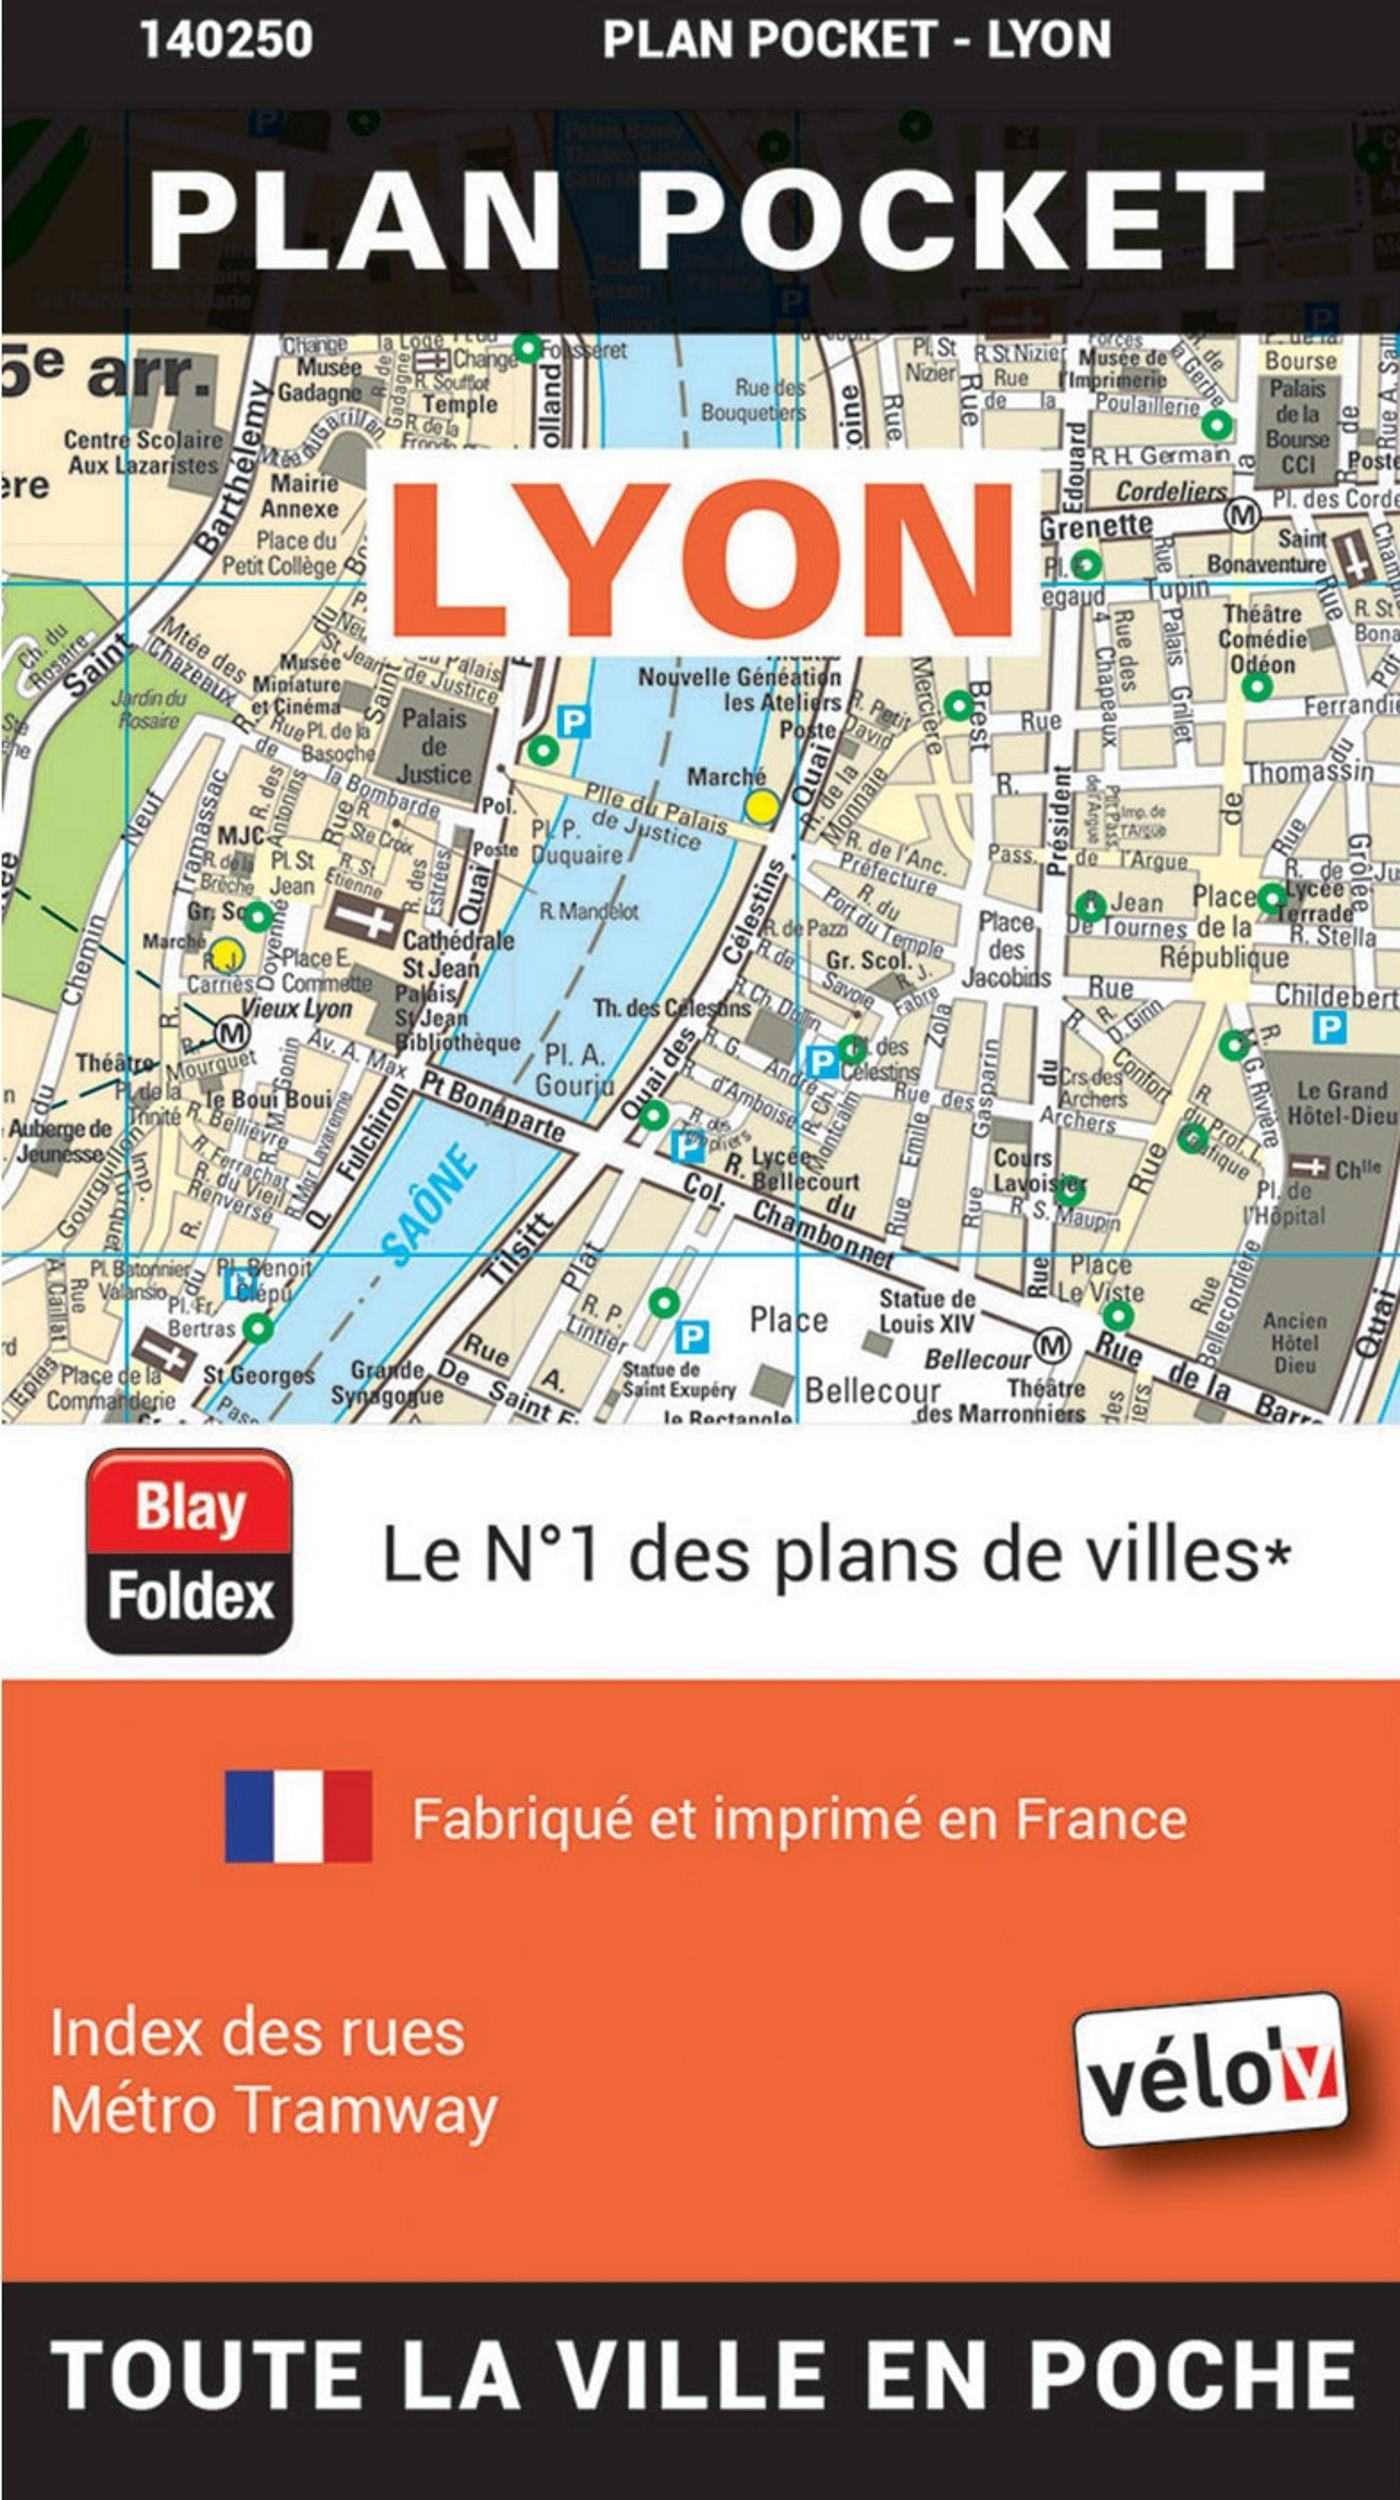 LYON PLAN POCKET